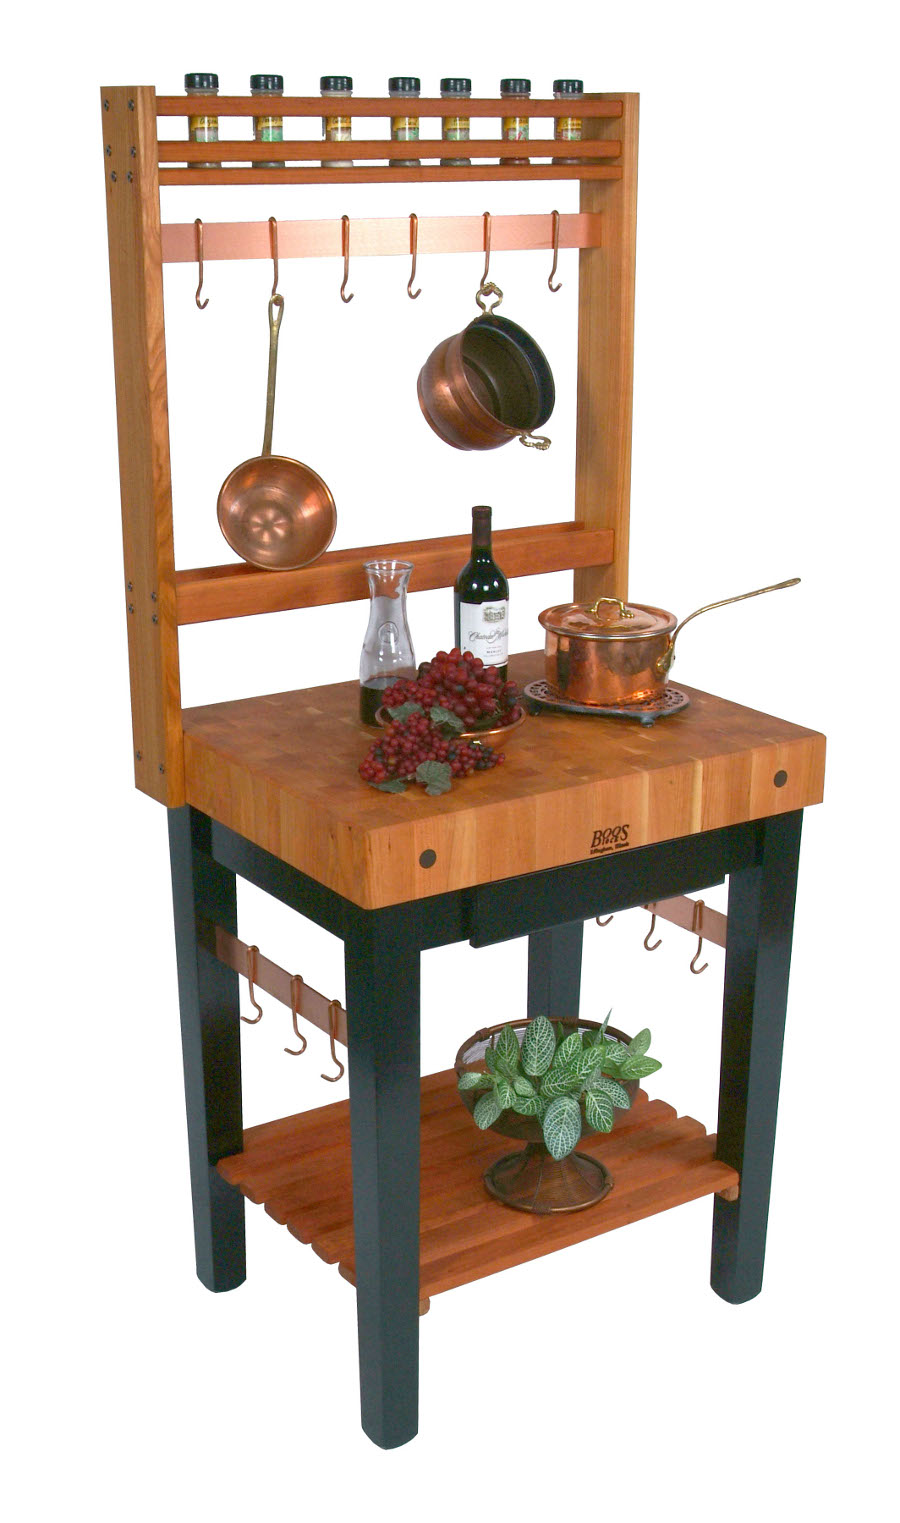 Boos Cherry Pro Prep Bloc 4 Thick Butcher Block Optional Pot Rack